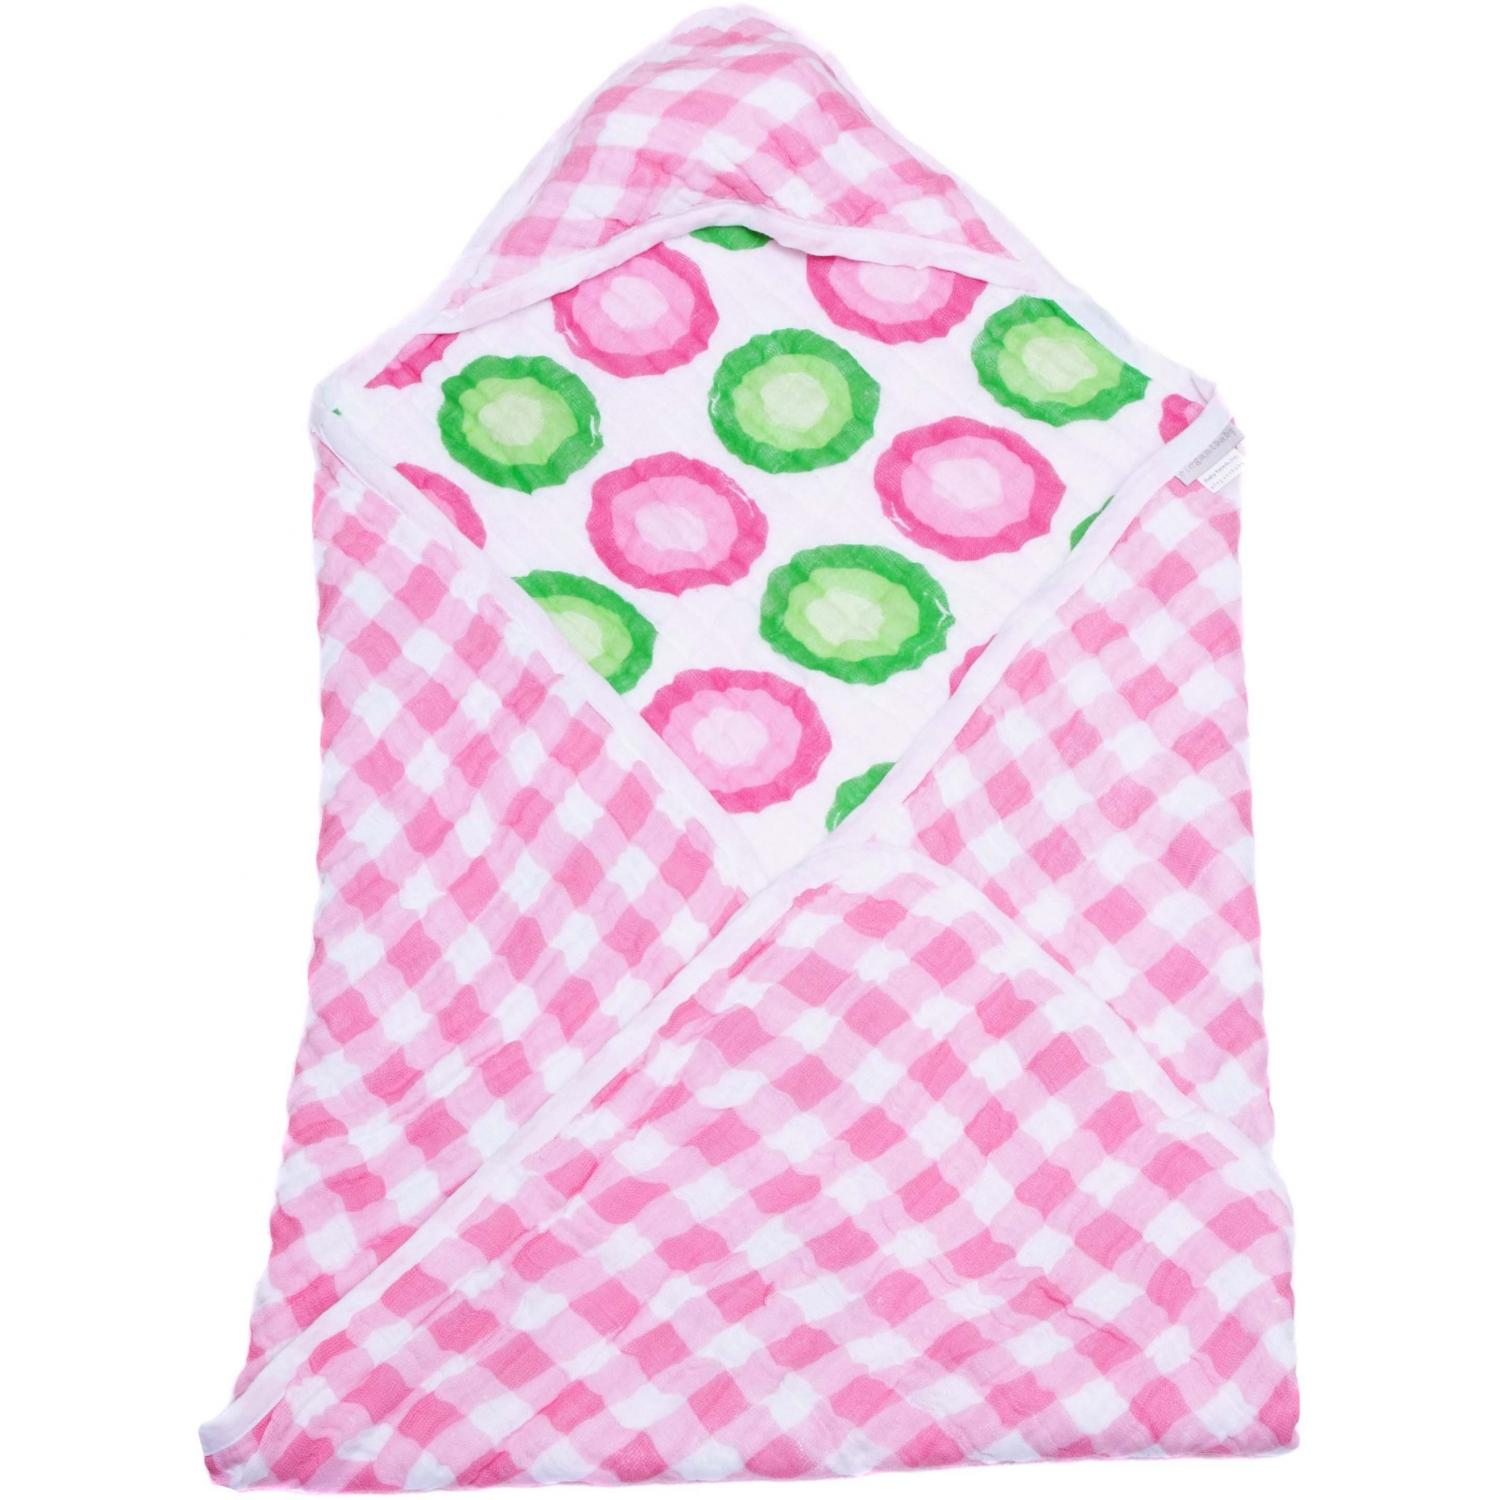 Elegant Baby Swaddle Collection Hooded Towel - Pink